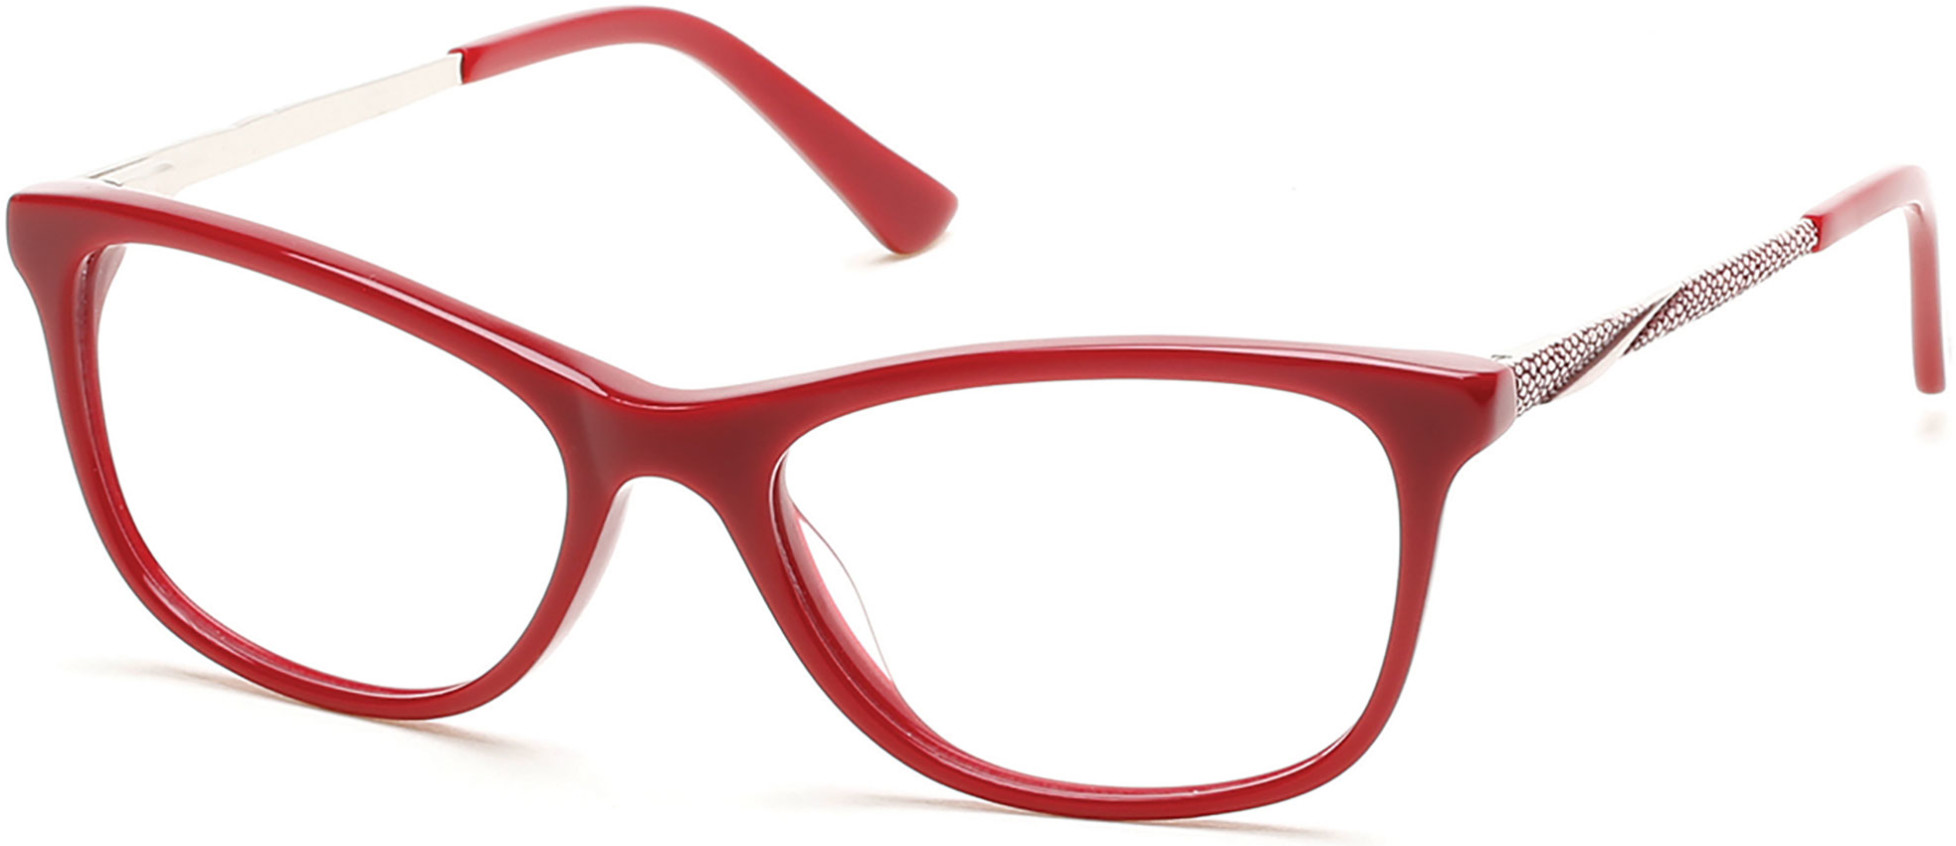 RAMPAGE RA0197 style-color 066 - Shiny Red